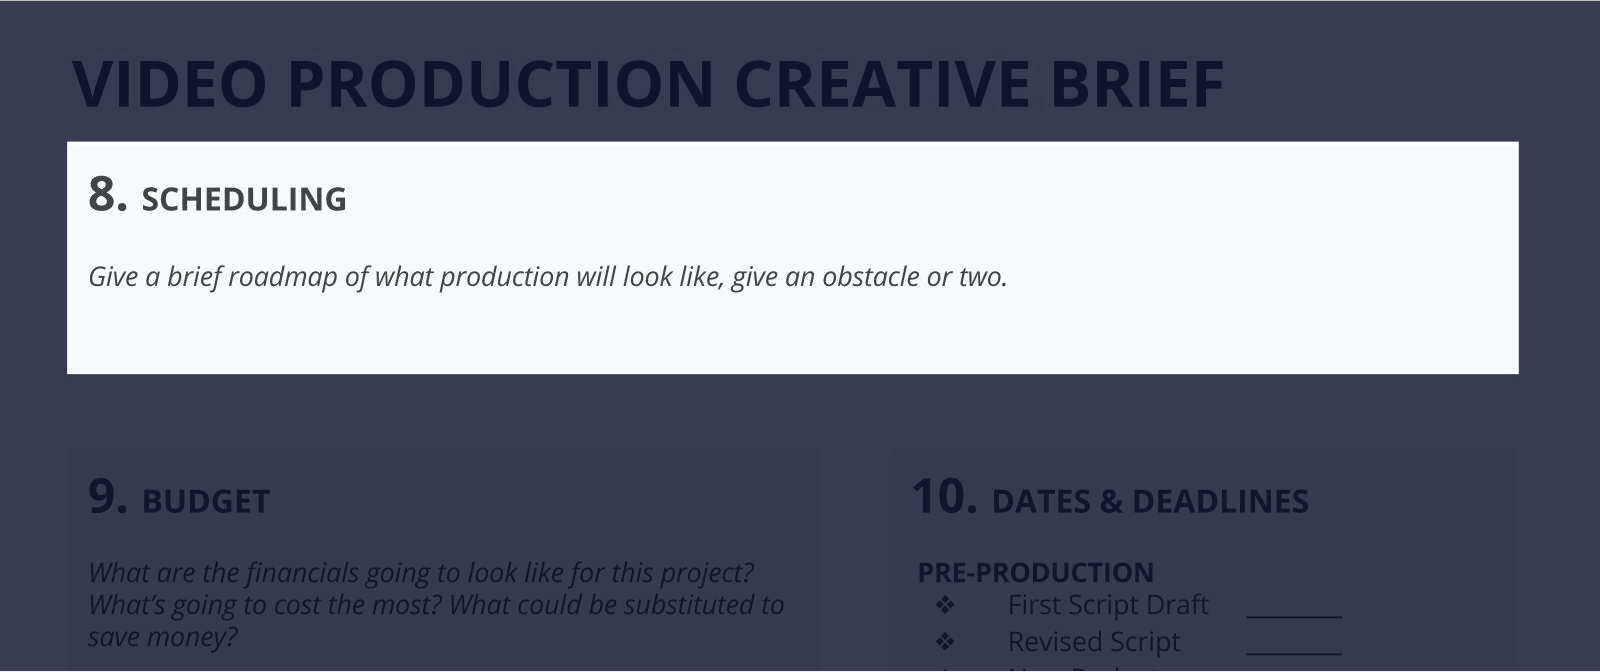 The Best Creative Brief Template For Video Agencies [Free Download] - Section 8 - Scheduling